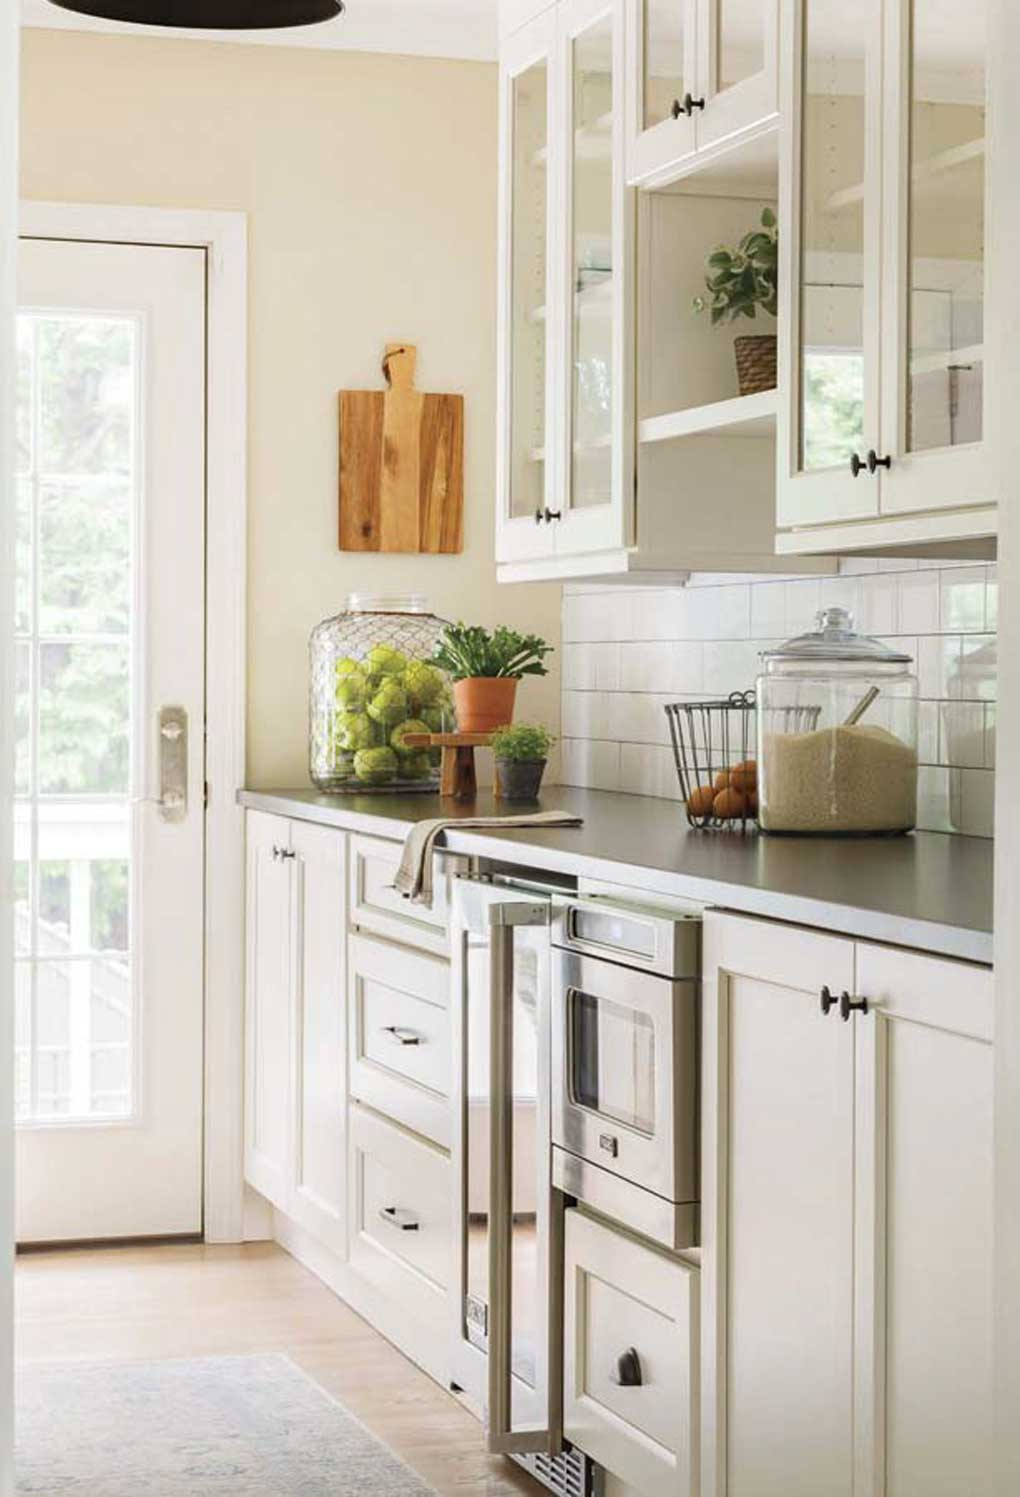 Creamy white kitchen, near a glass paneled back door letting in tons of light and small plants giving texture to the countertops.